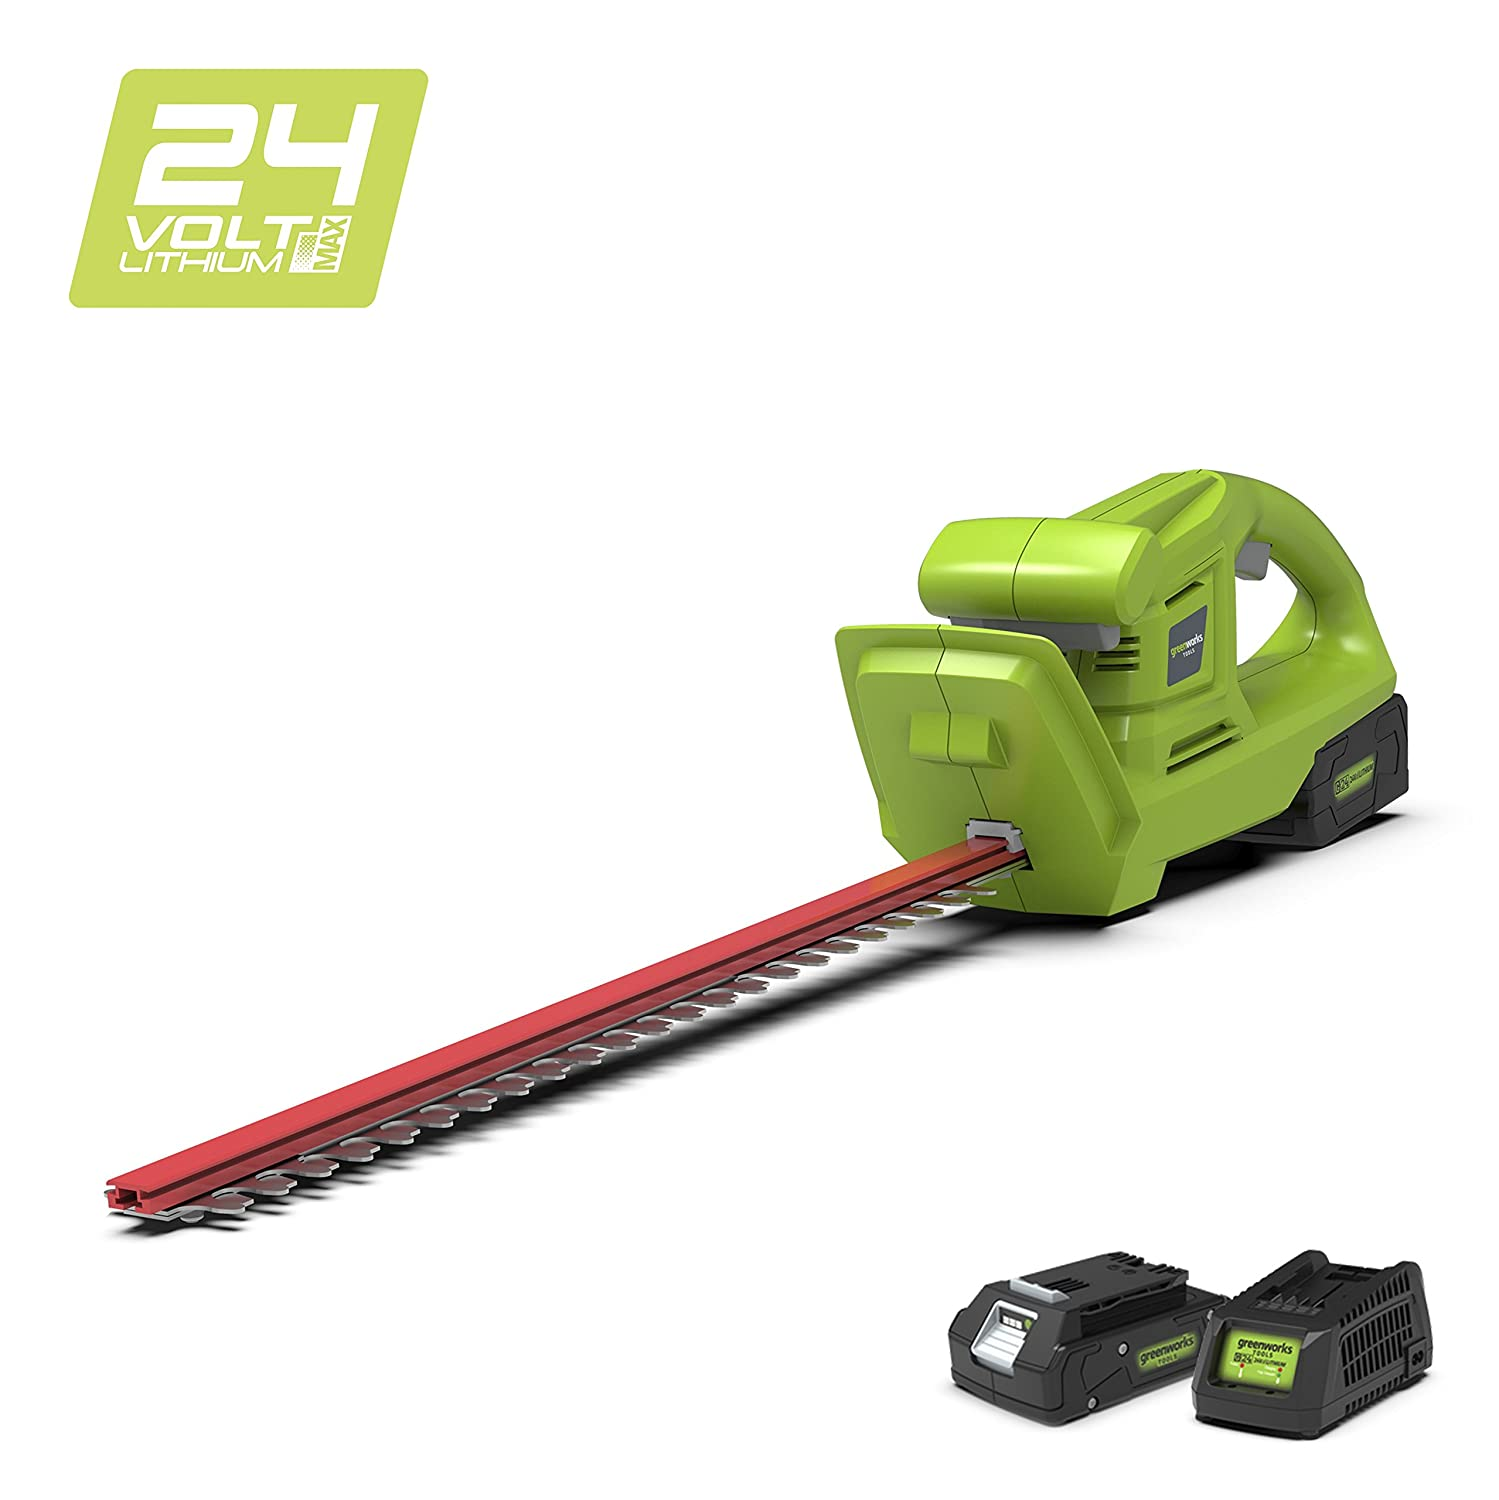 Greenworks 24V Cordless Hedge Trimmer (OPP) - Battery and charger not included - 2201207 Greenworks Tools